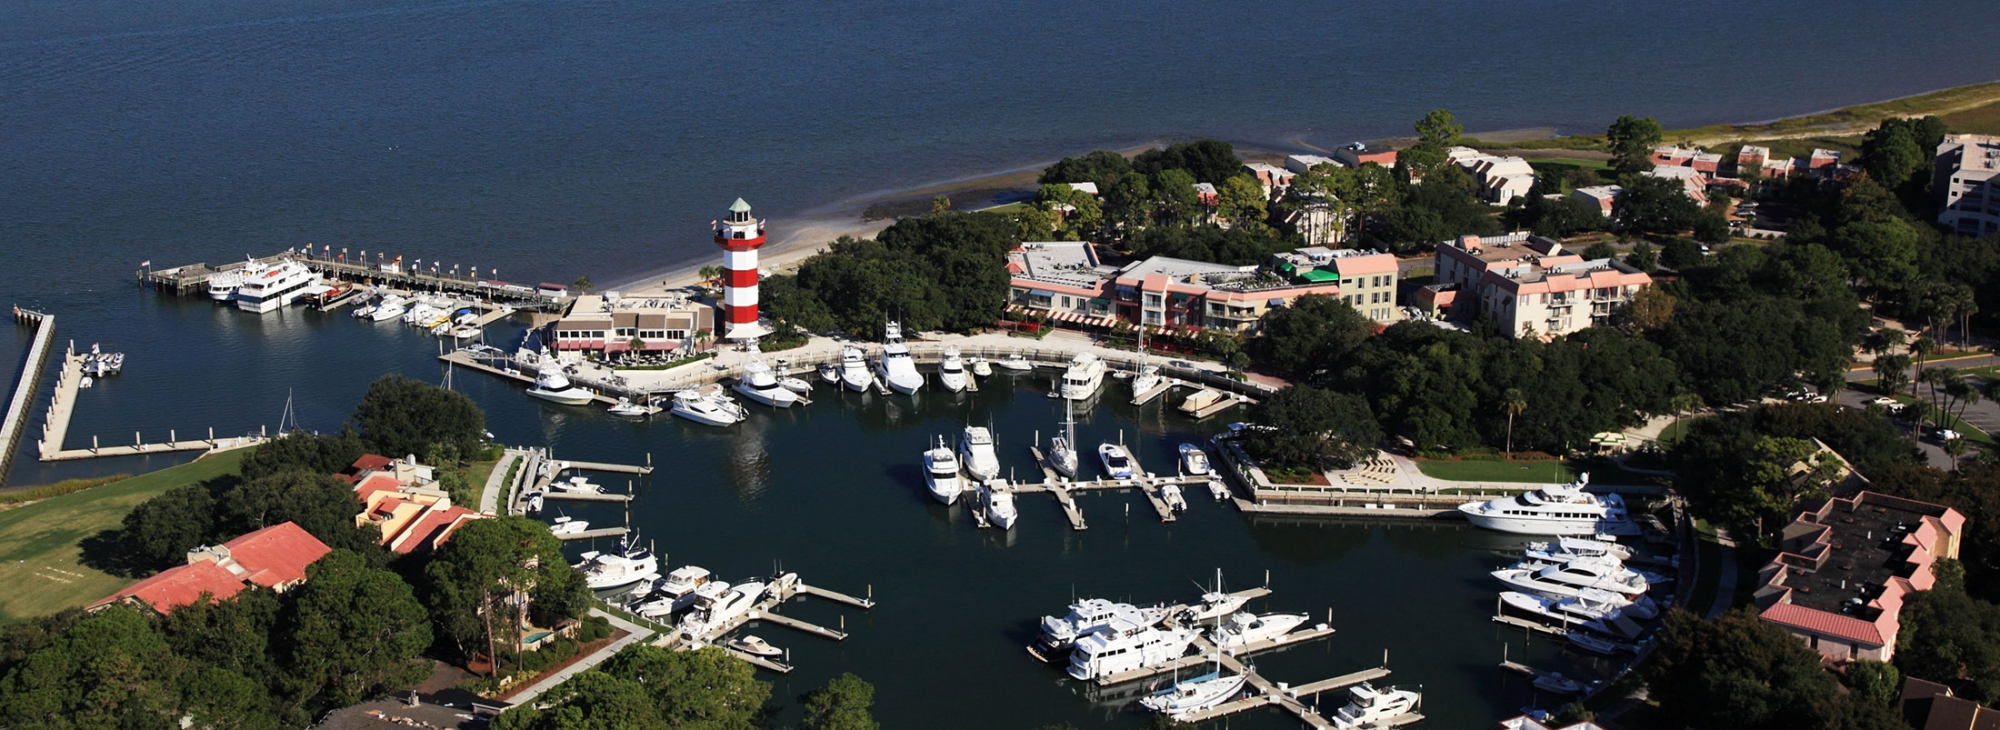 Aerial view of the Harbour Town Marina